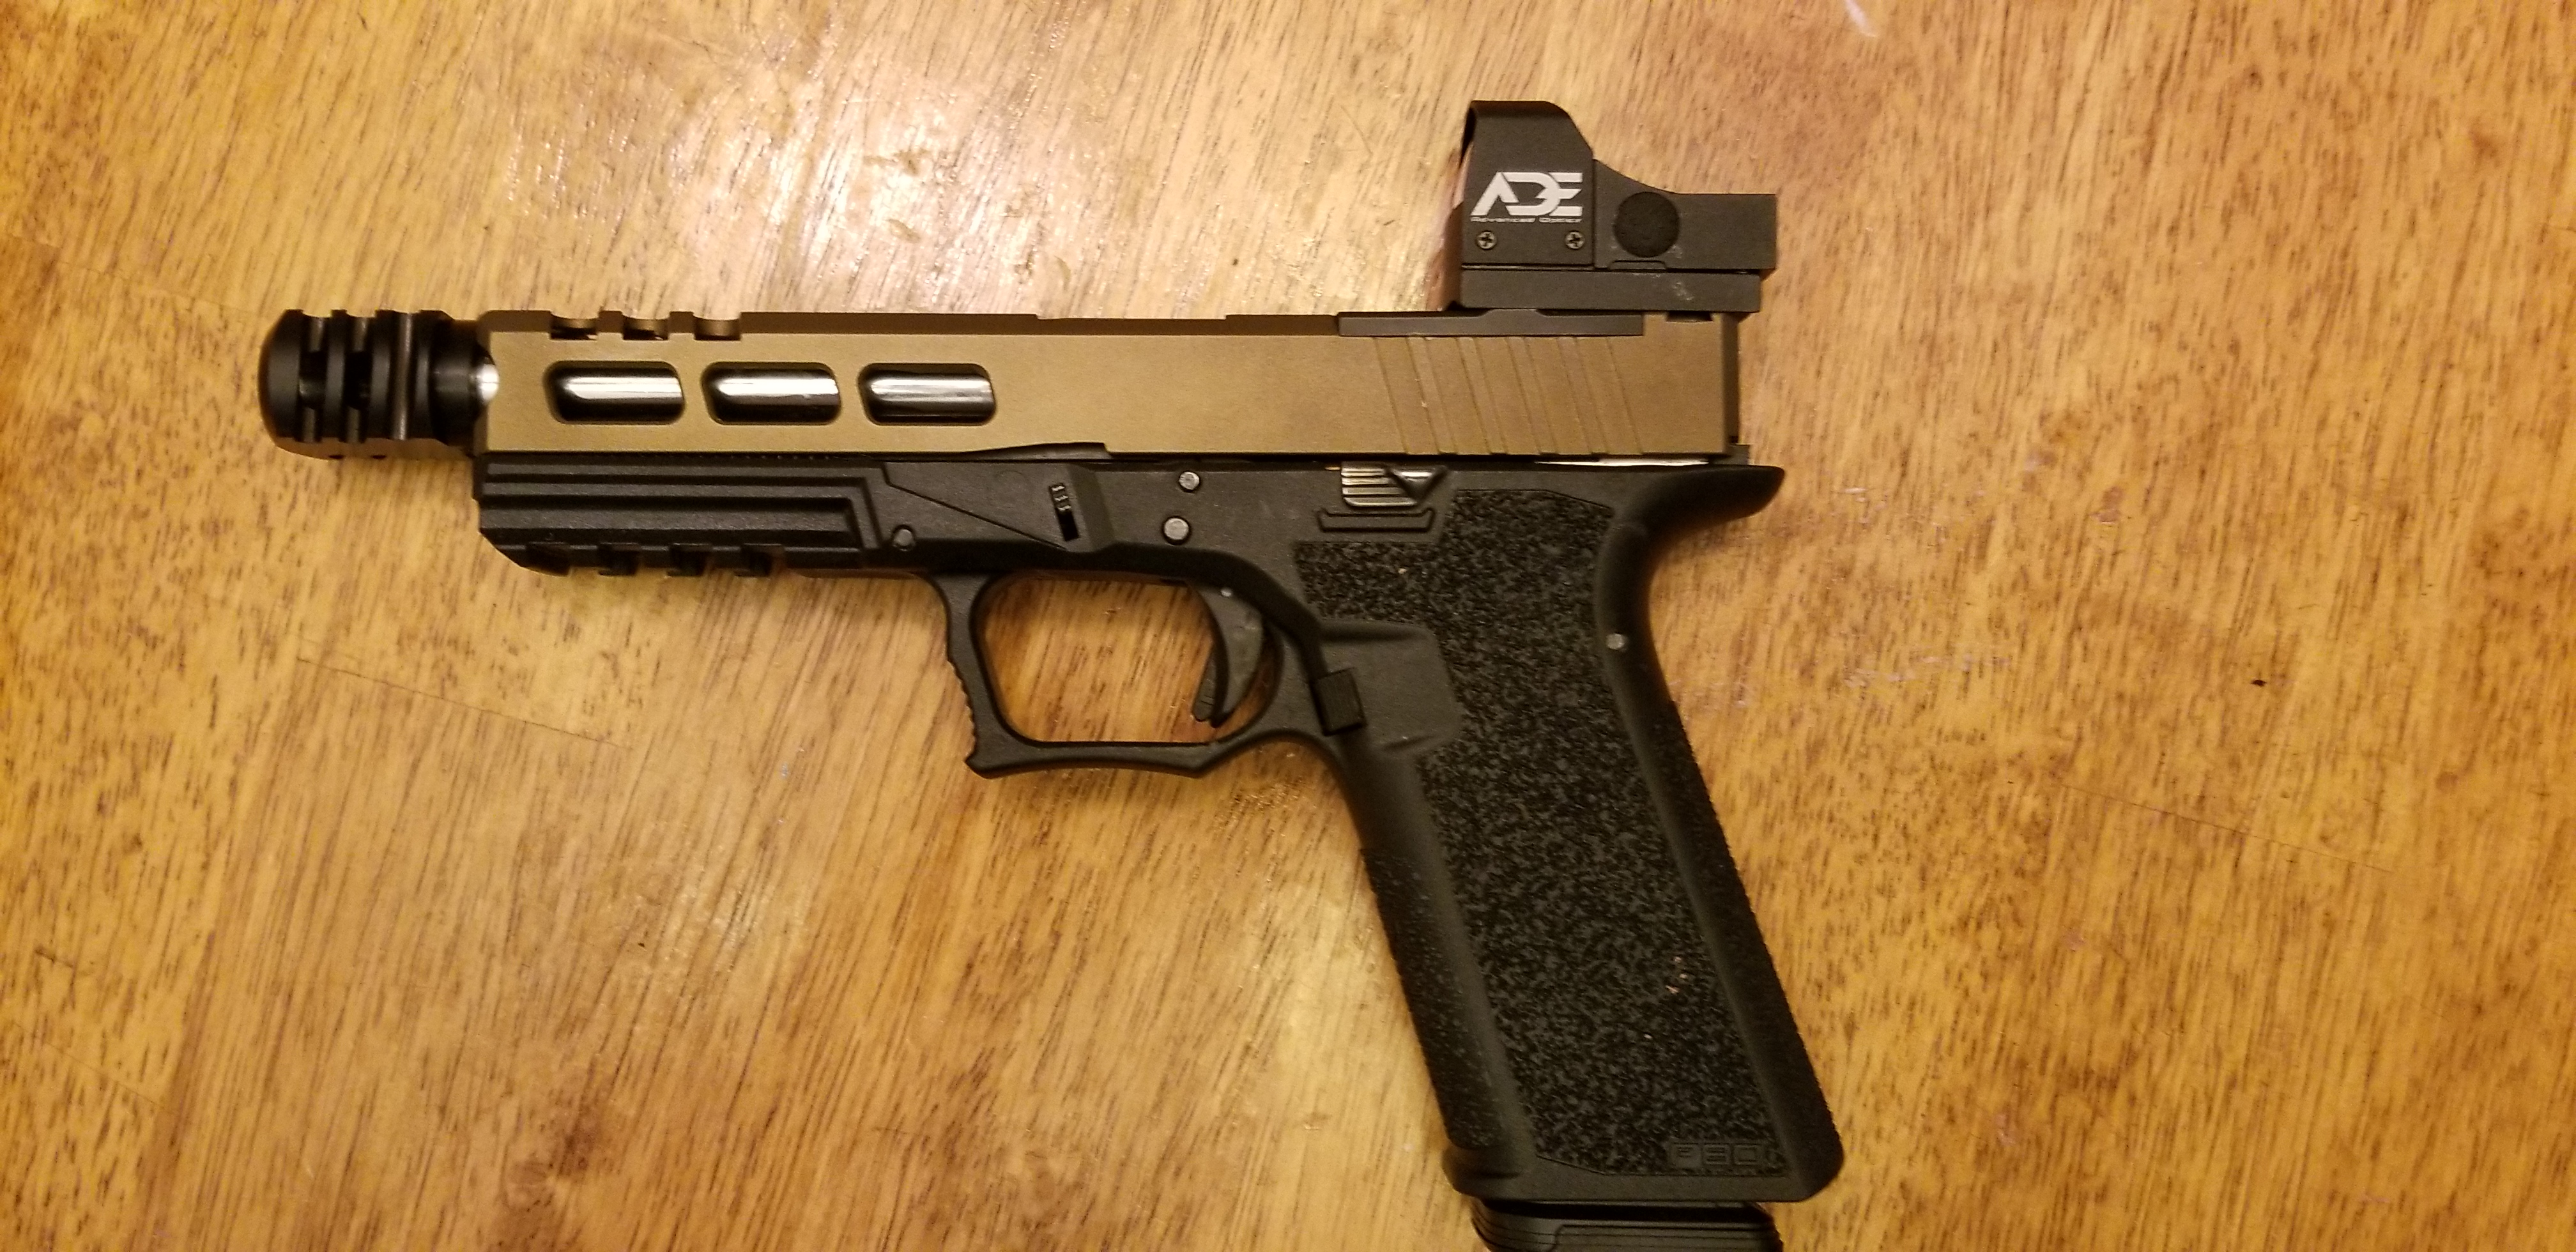 Gorilla Machining Glock 17 Build Your Upper Half Custom Slides with RMR cut  out